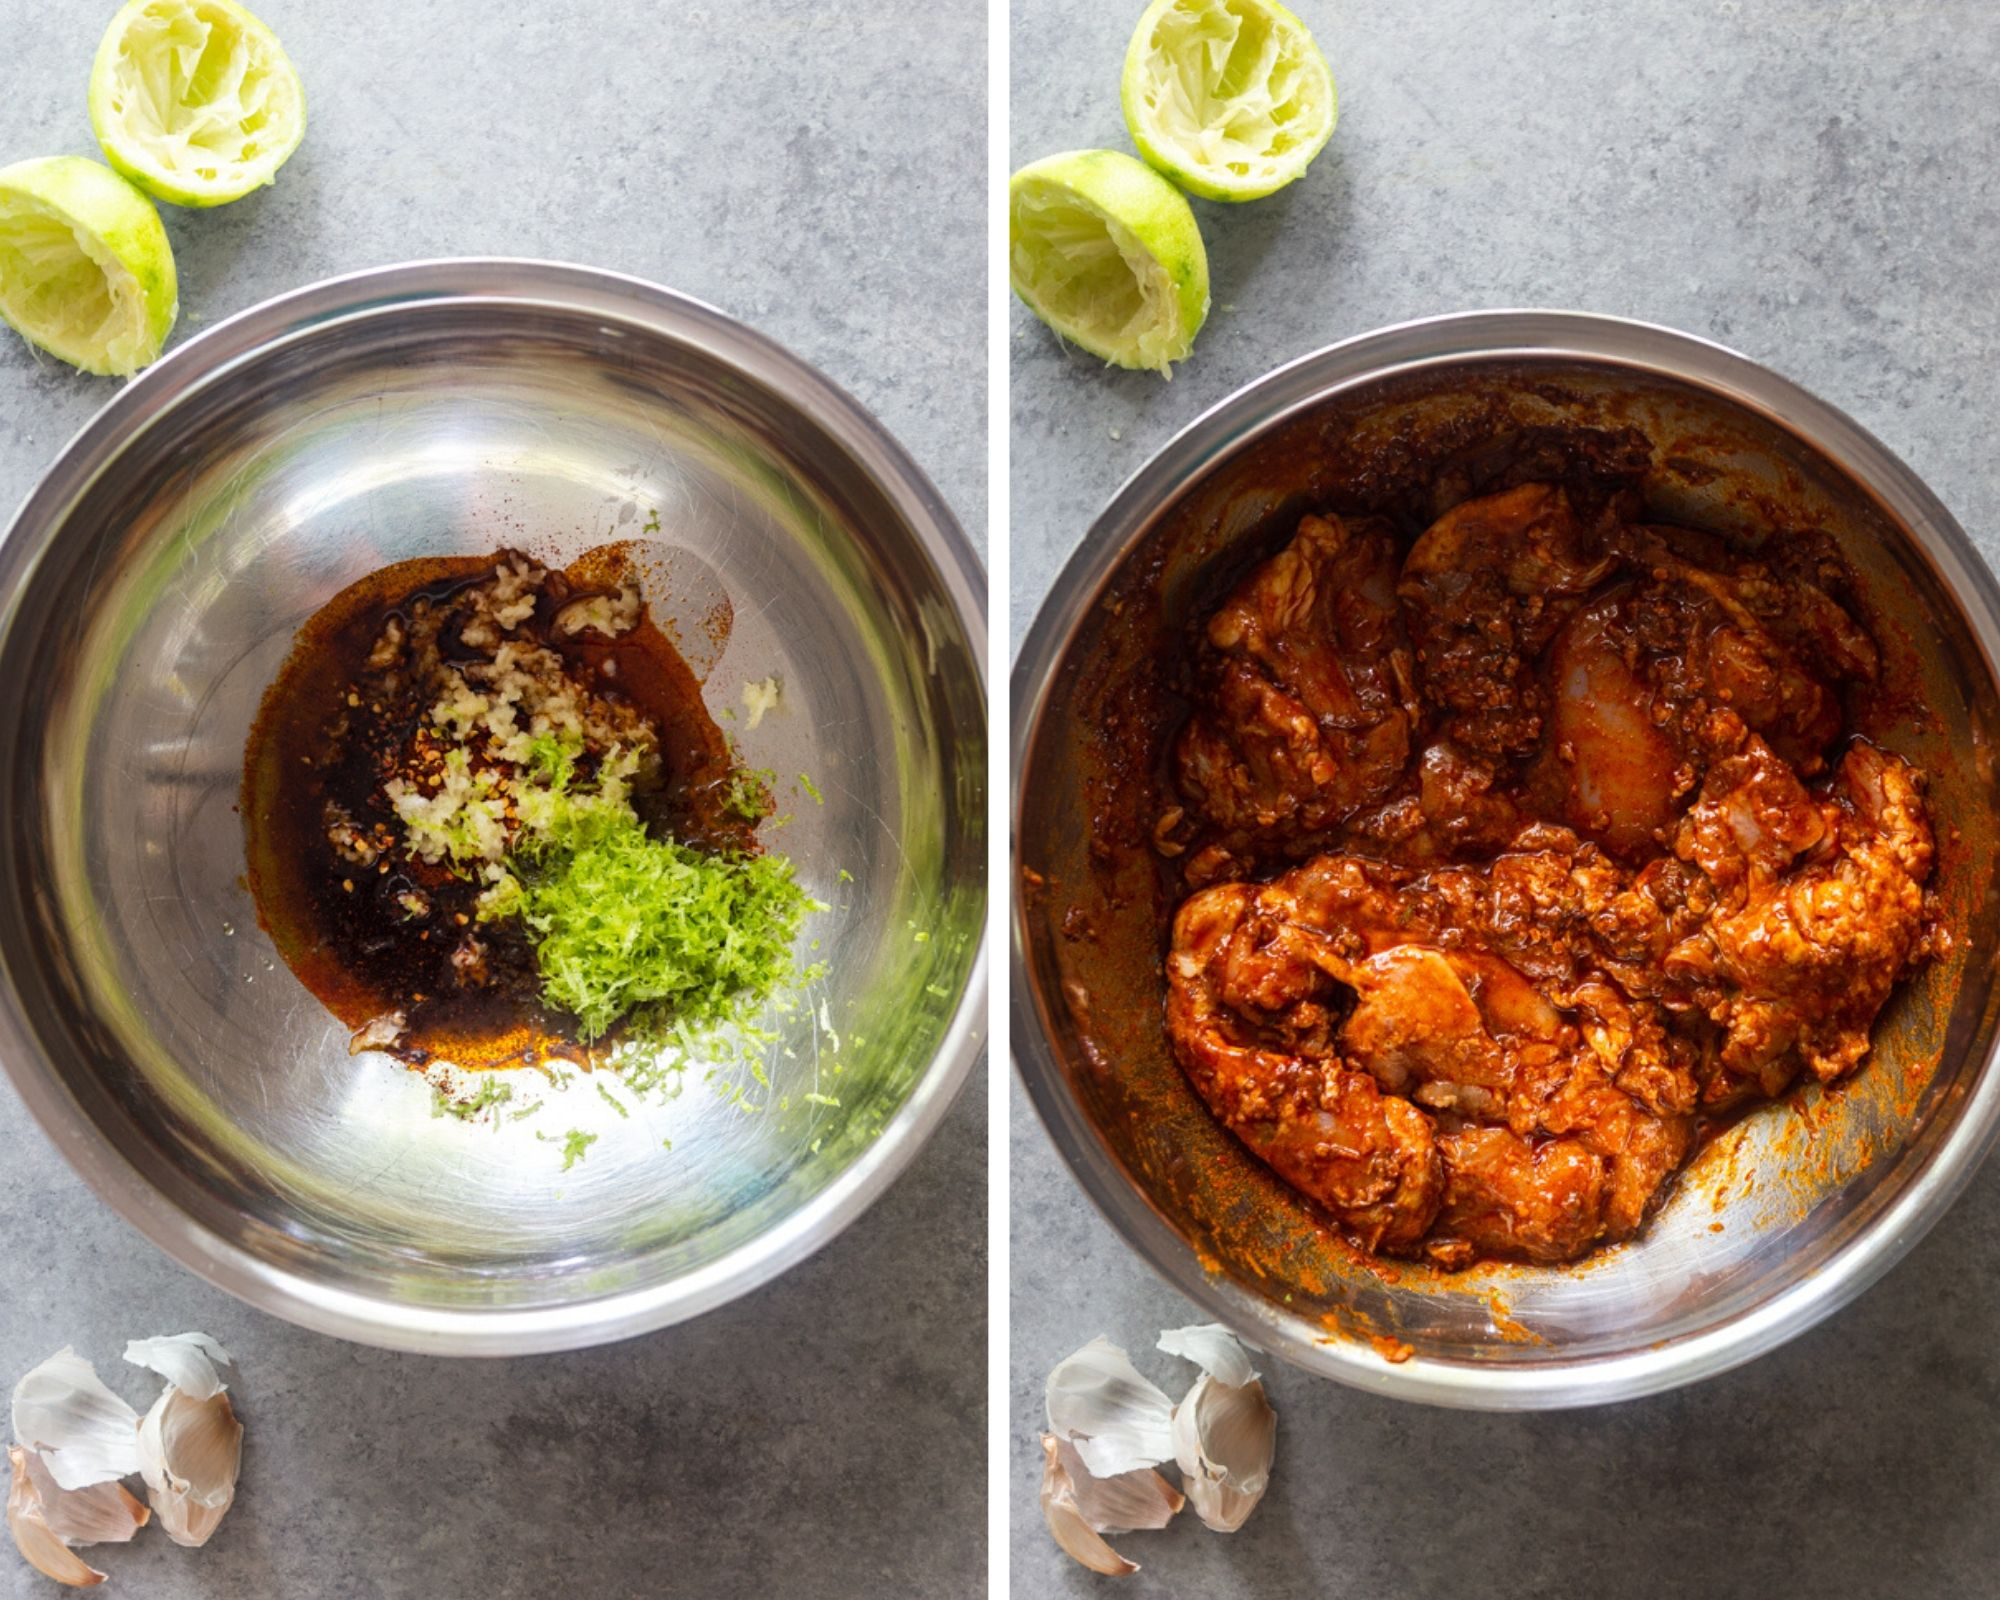 chilik lime chicken taco marinade before and after the chicken is added